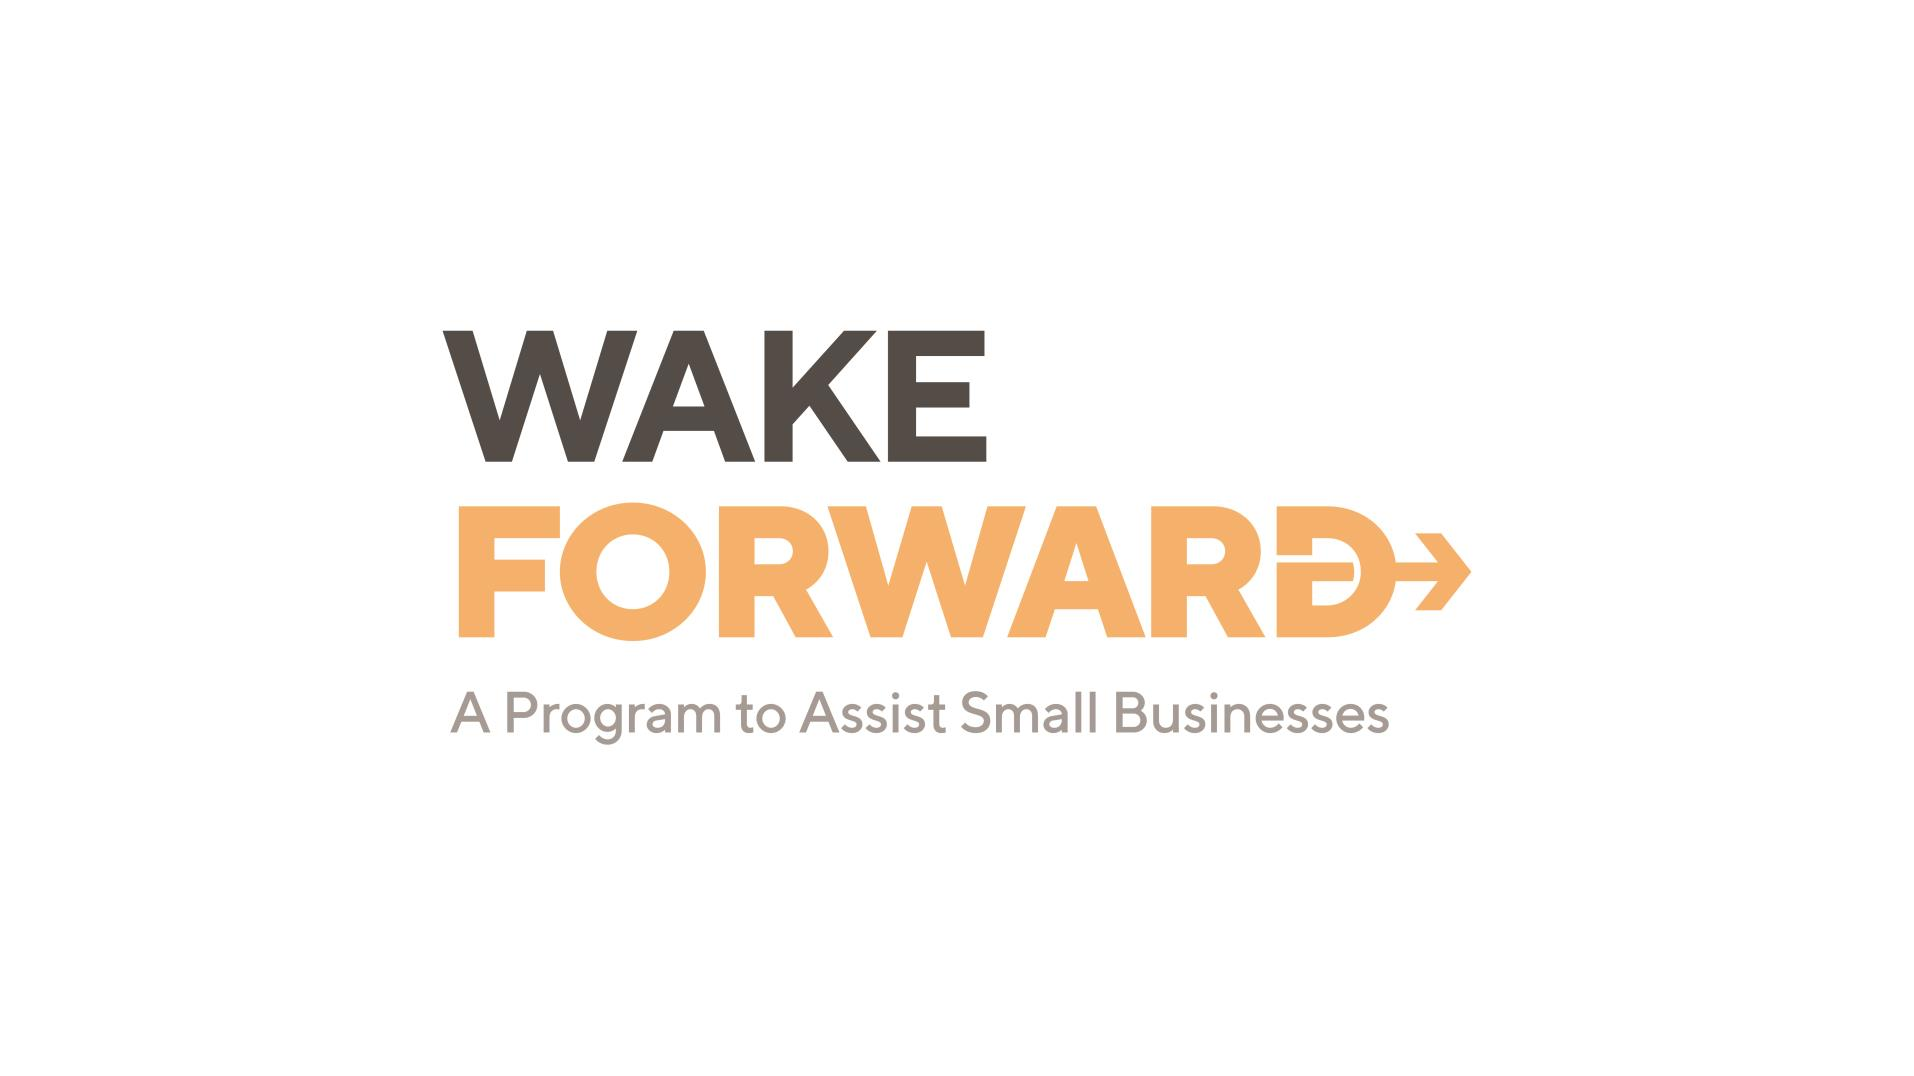 wake forward program